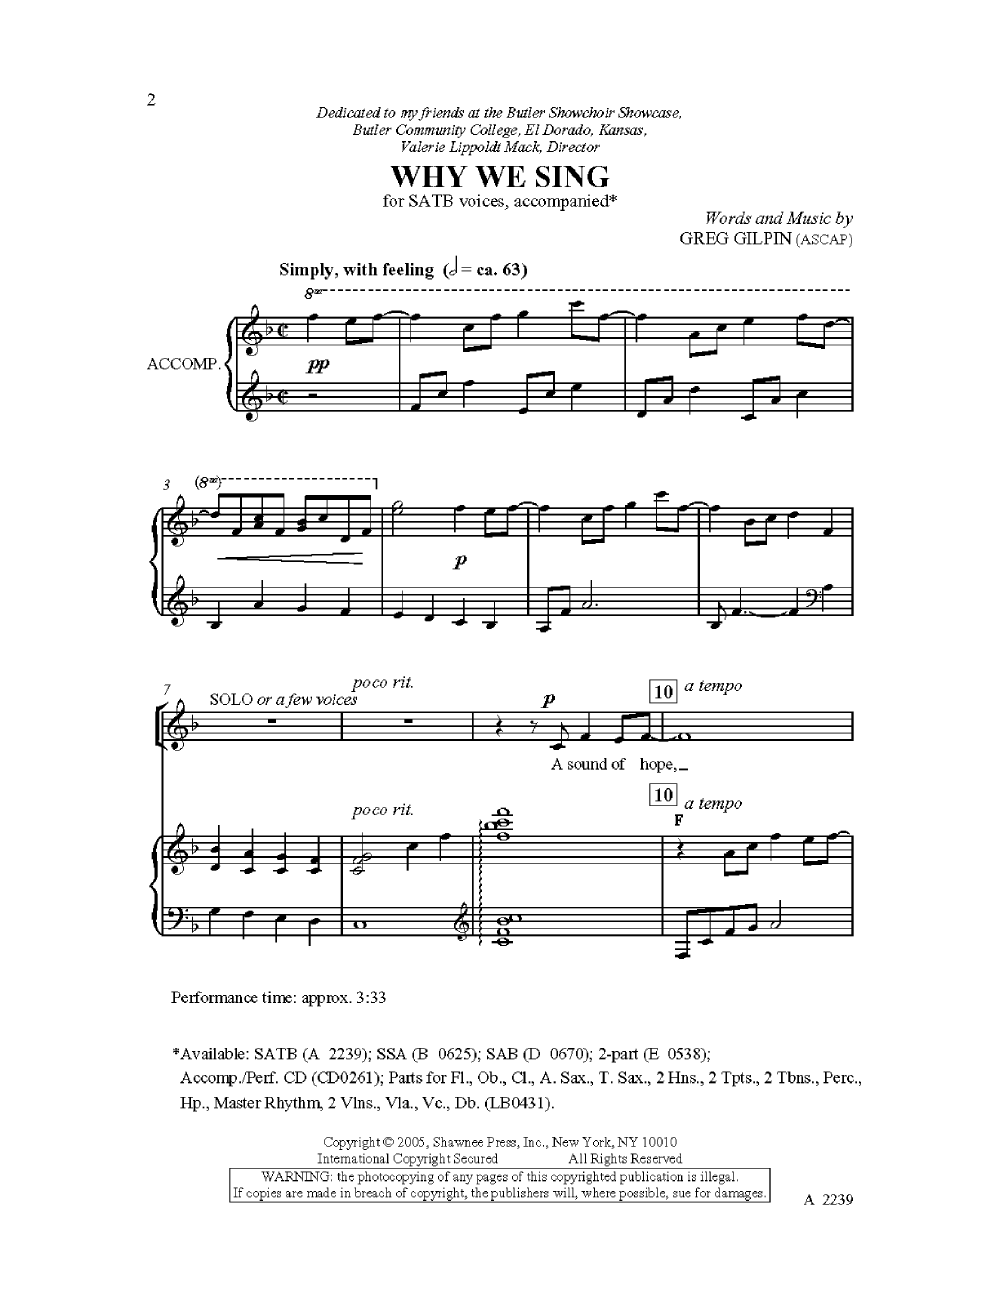 Why we sing satb by greg gilpin jw pepper sheet music this why we sing satb by greg gilpin jw pepper sheet music this has hexwebz Image collections